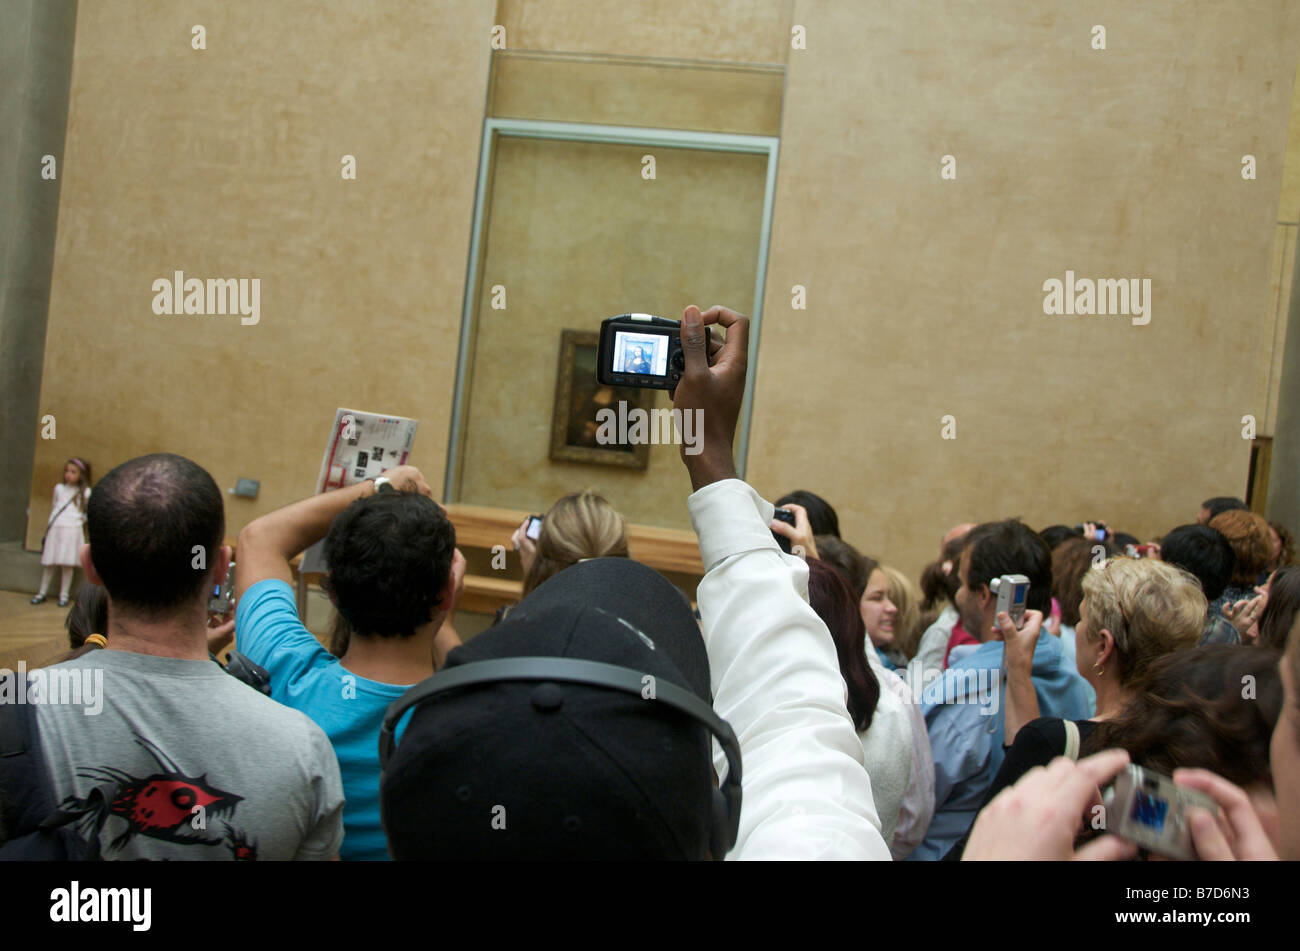 People taking pictures of Mona Lisa, Louvre, Paris, France, Europe - Stock Image